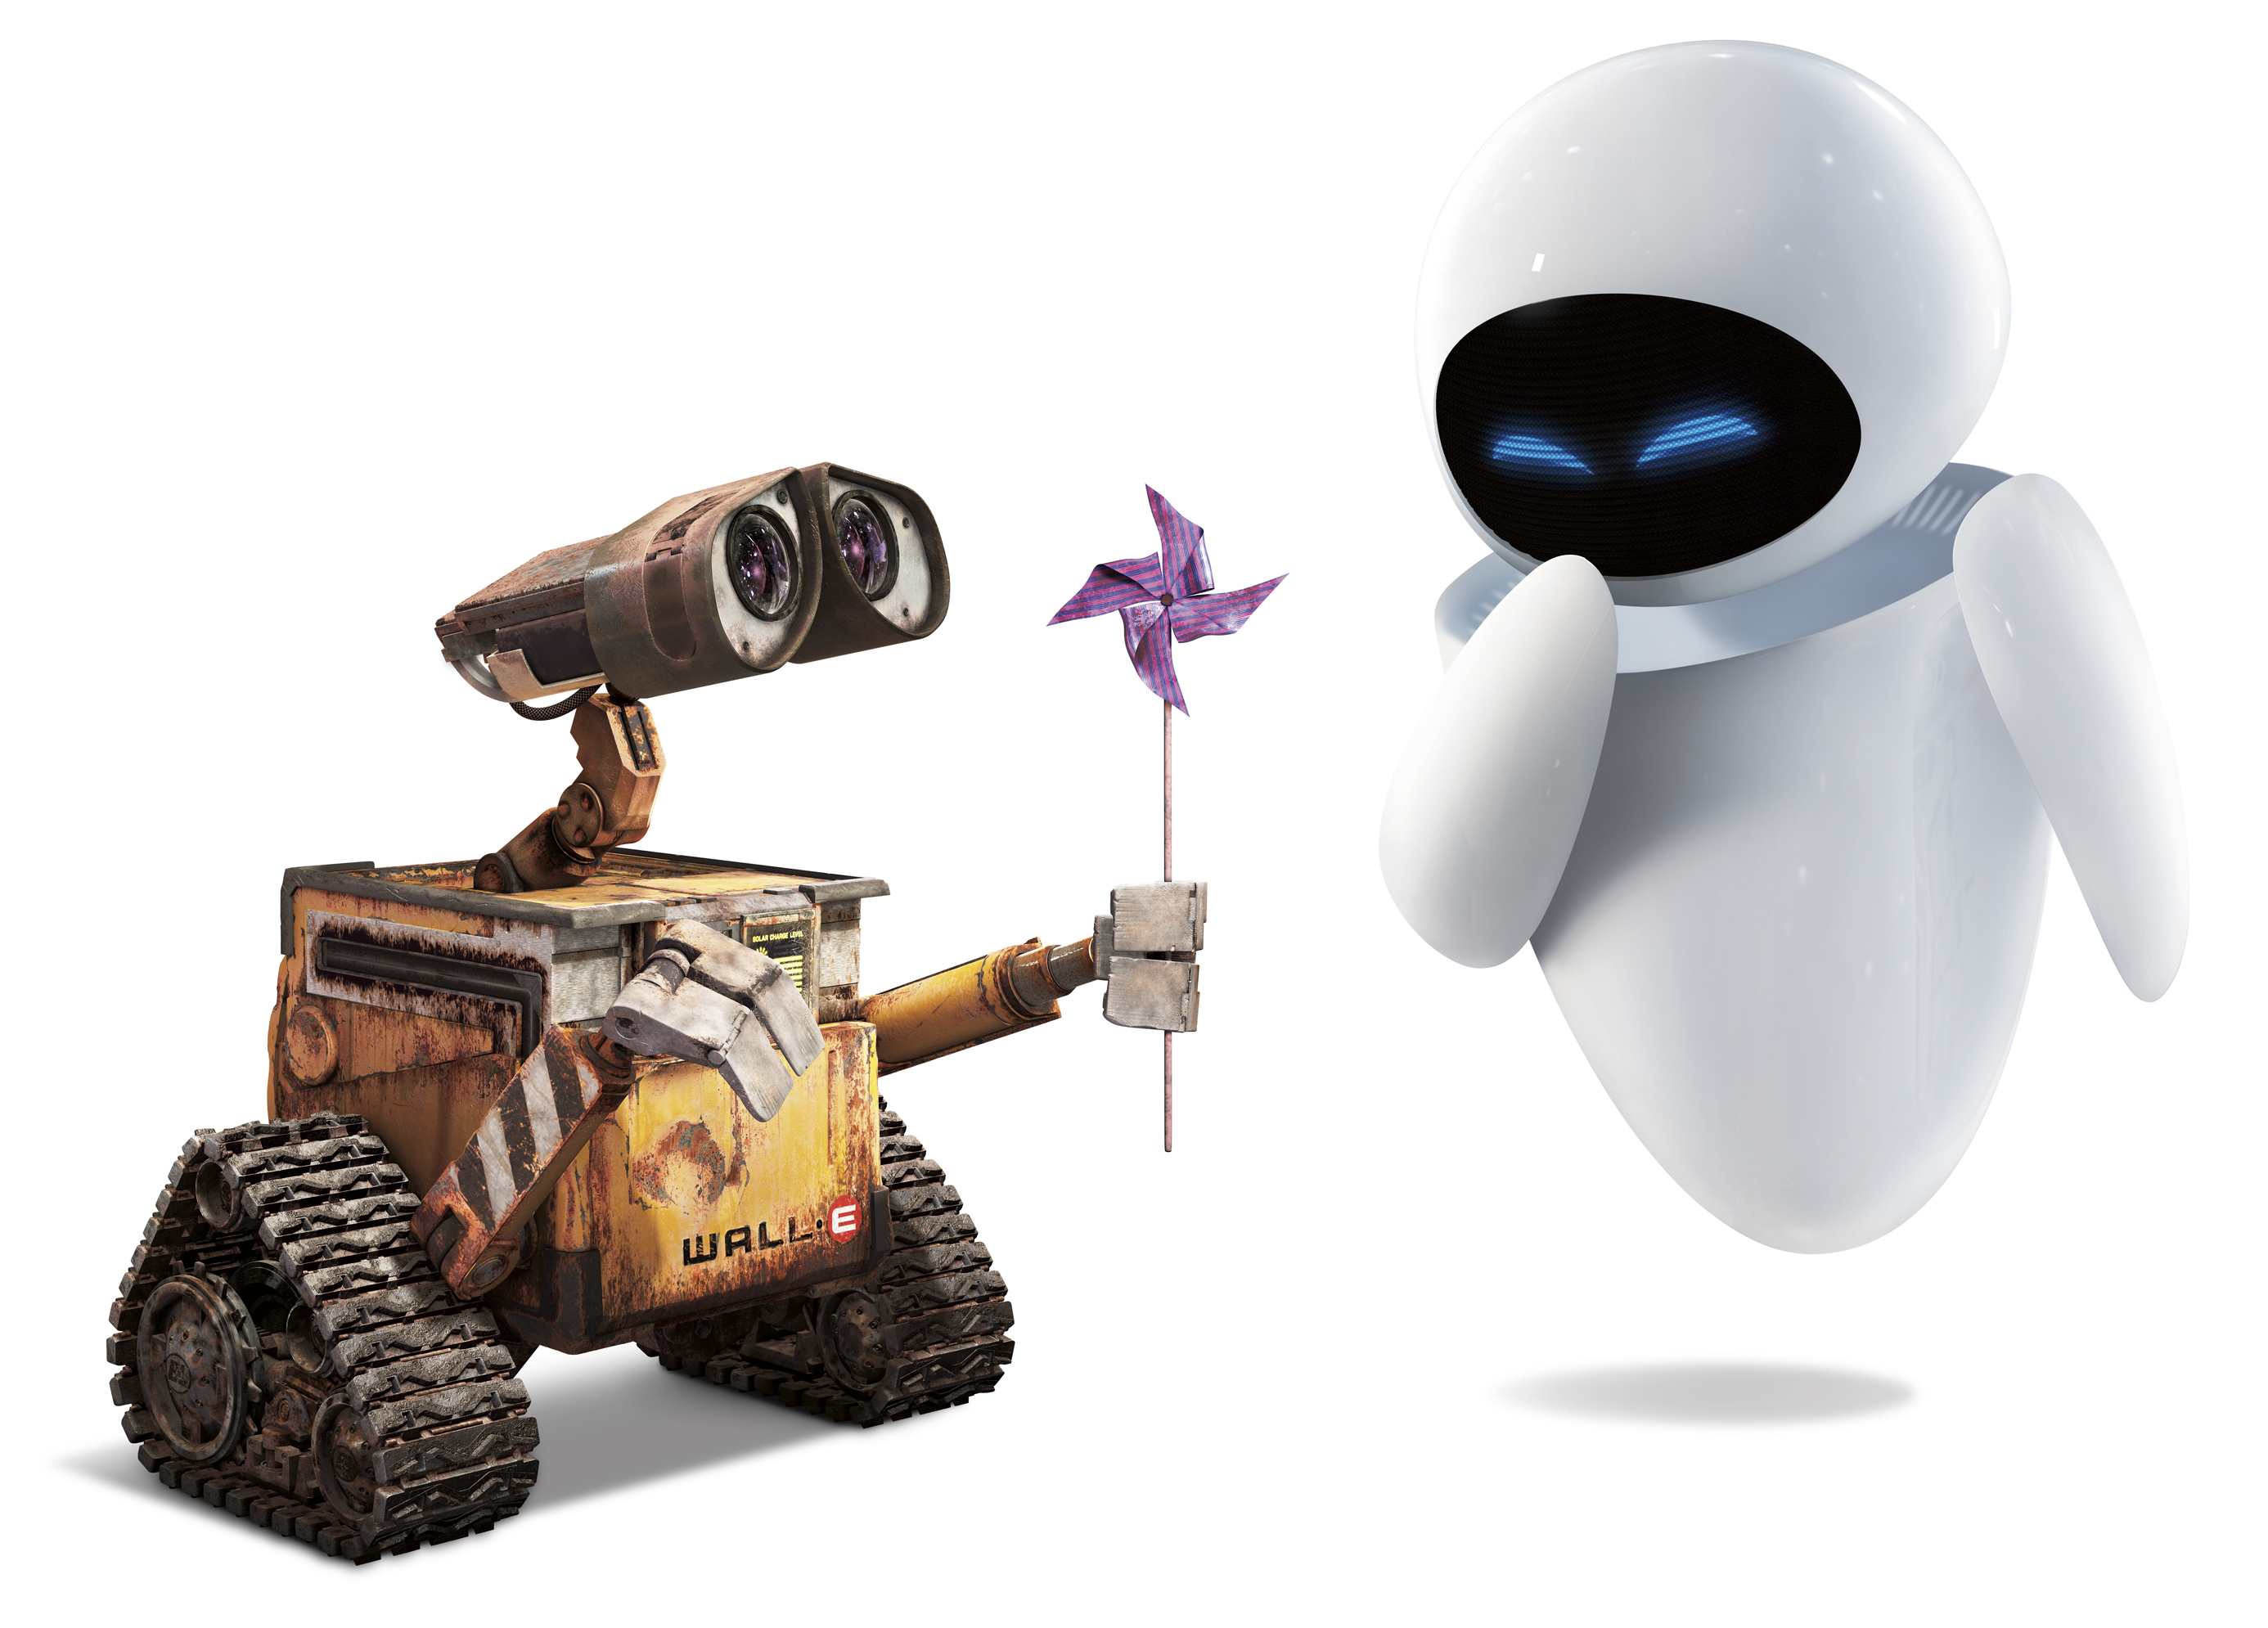 wall e wallpaper 1 | wallpapersbq